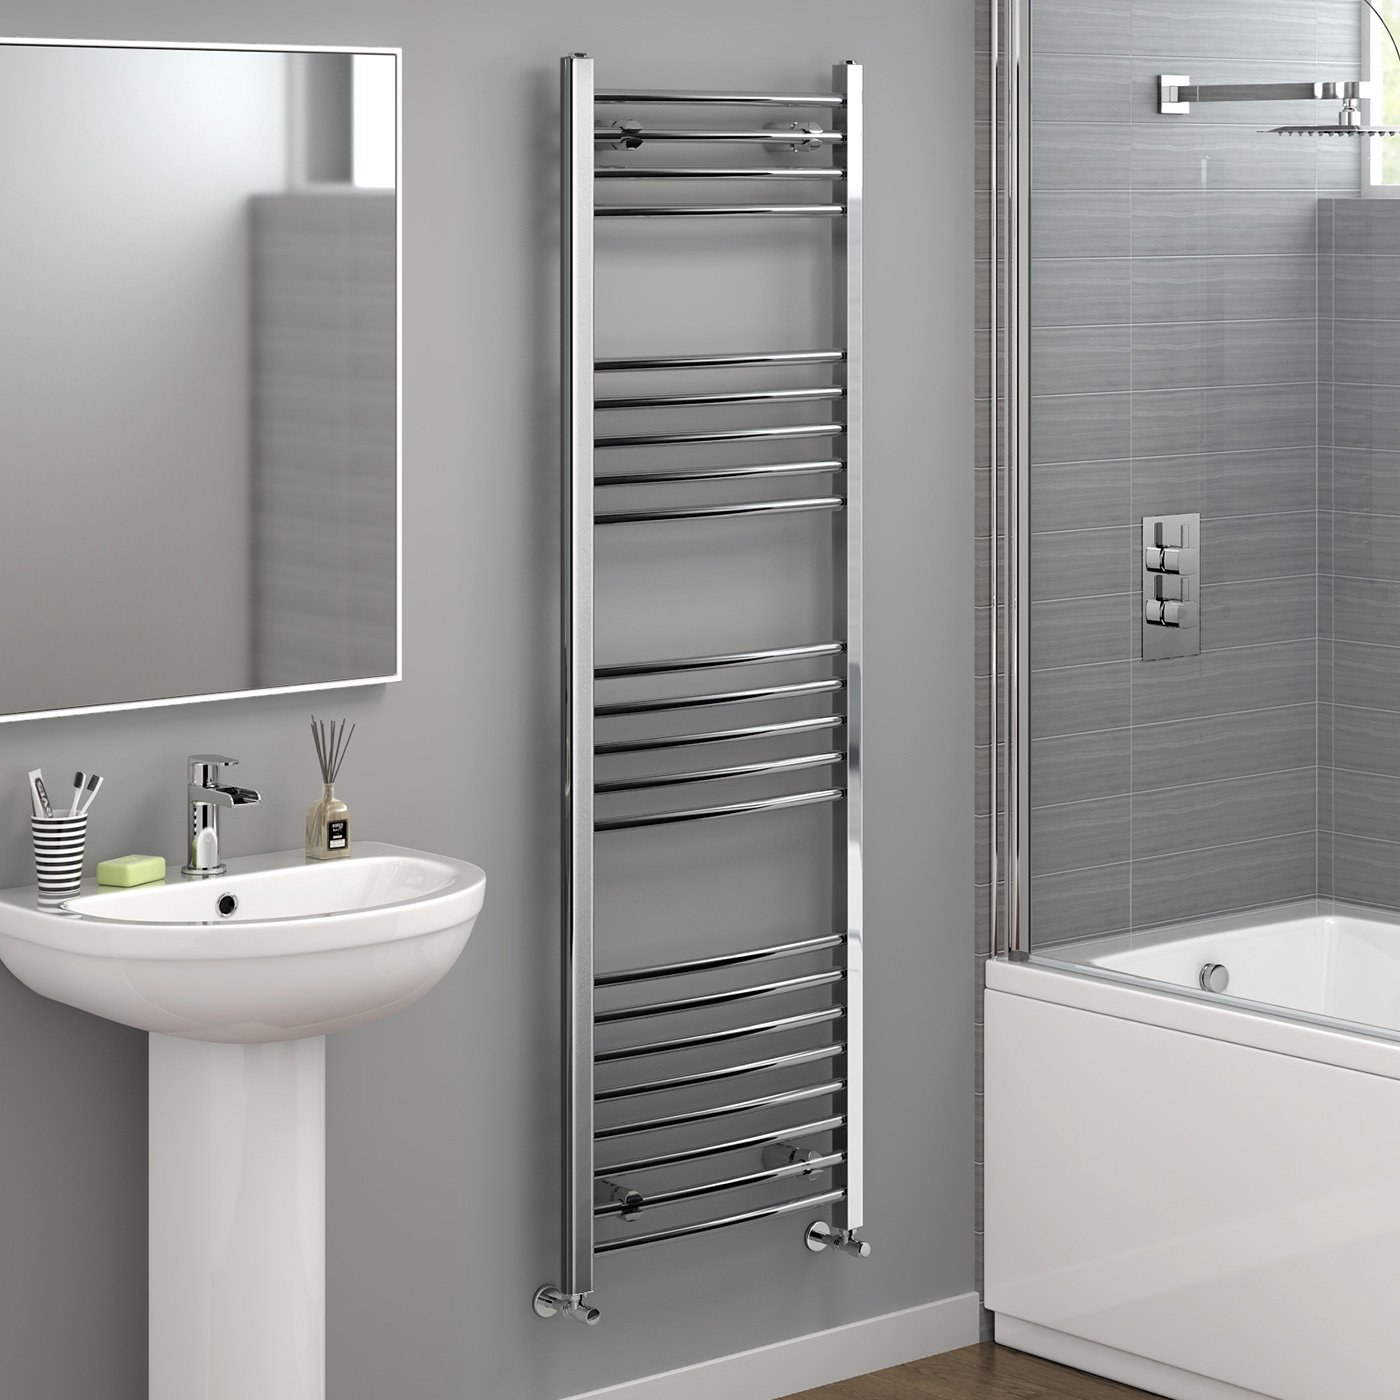 1600x500mm Chrome Curved Towel Radiator Ladder Modern Bathroom NC1600500 iBathUK